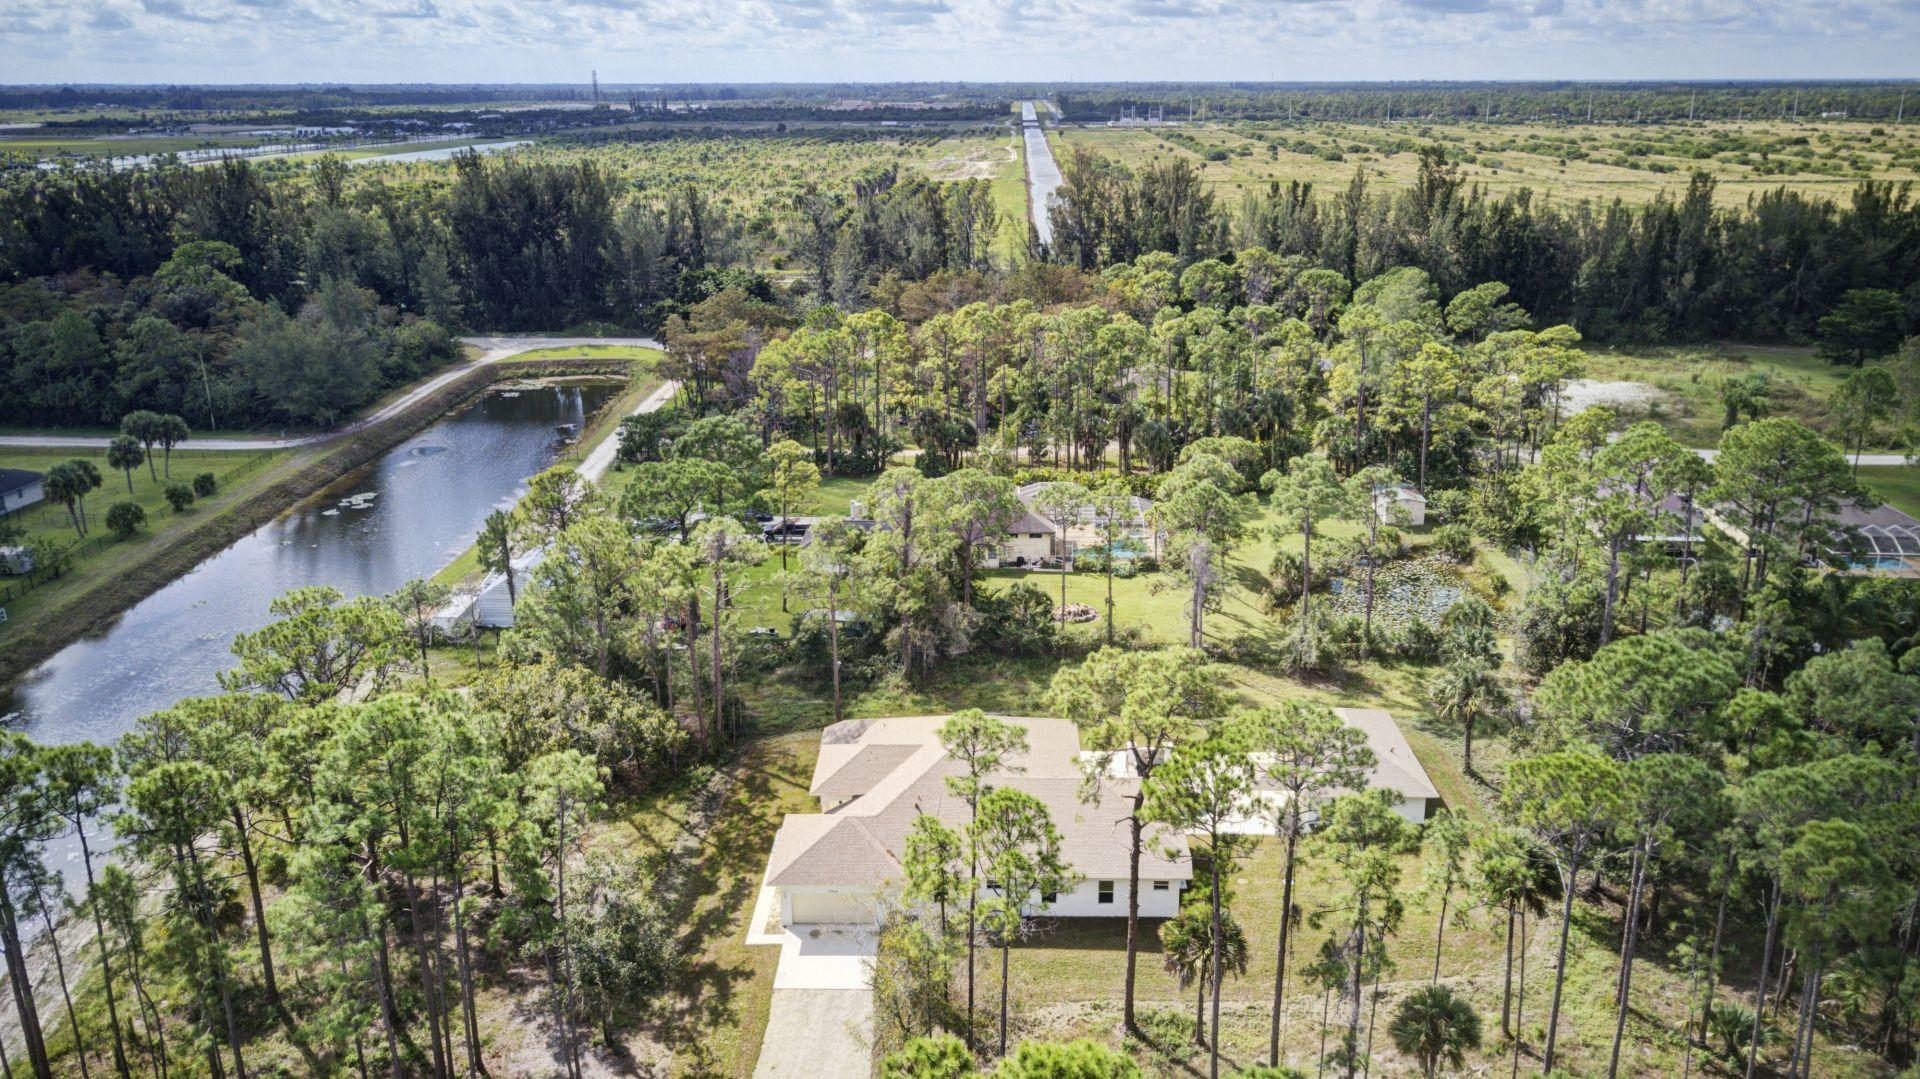 17038 61st Place, Loxahatchee, Florida 33470, 5 Bedrooms Bedrooms, ,4 BathroomsBathrooms,Single Family,For Sale,61st,RX-10572246